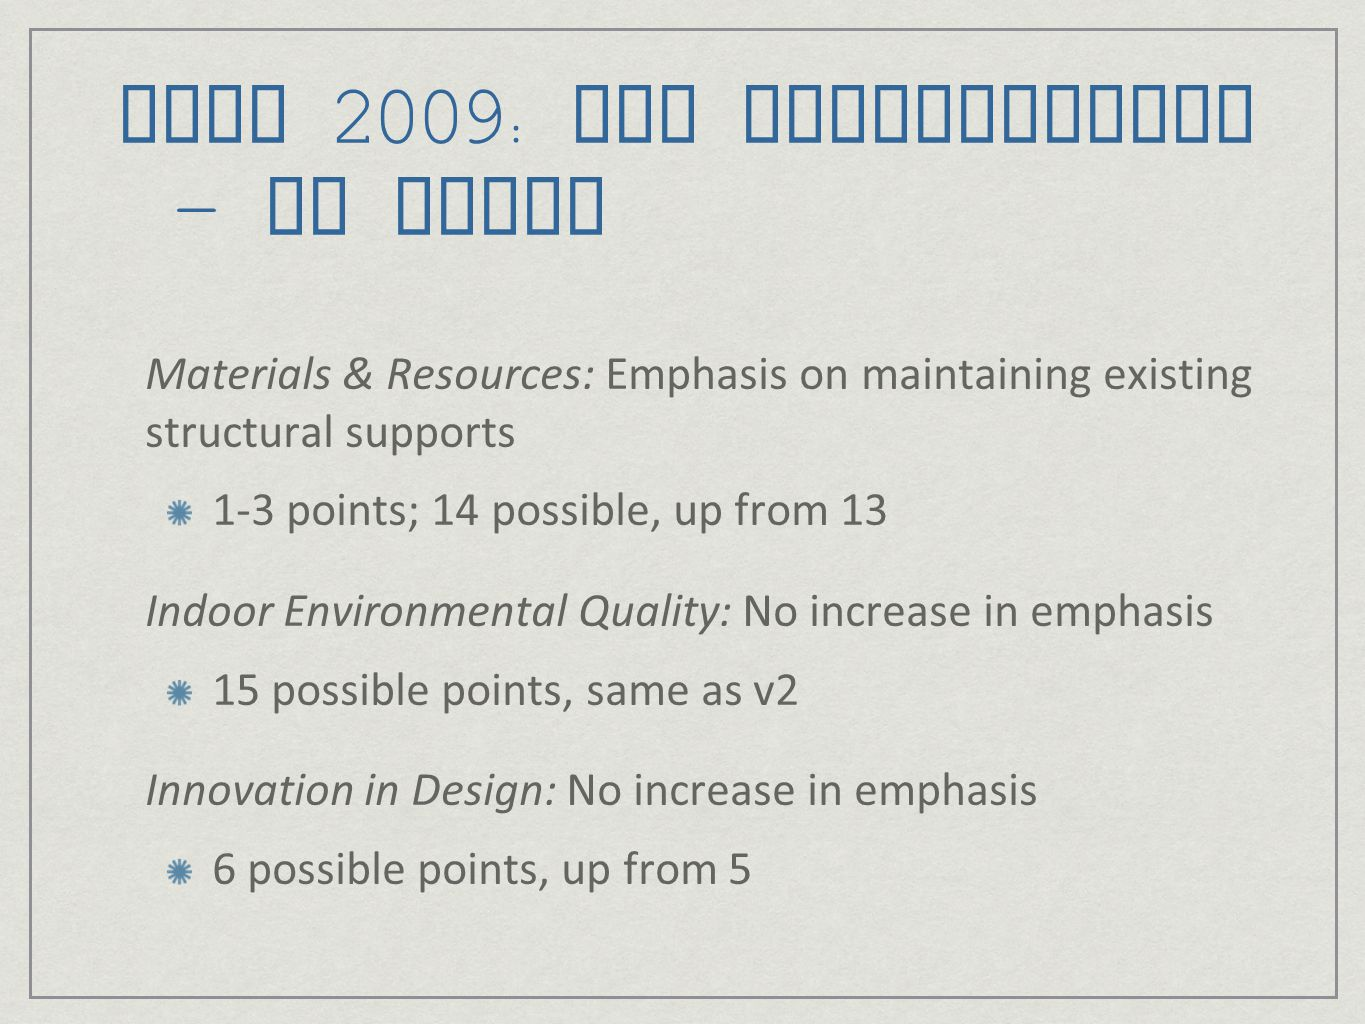 LEED 2009: New Construction – No Gains